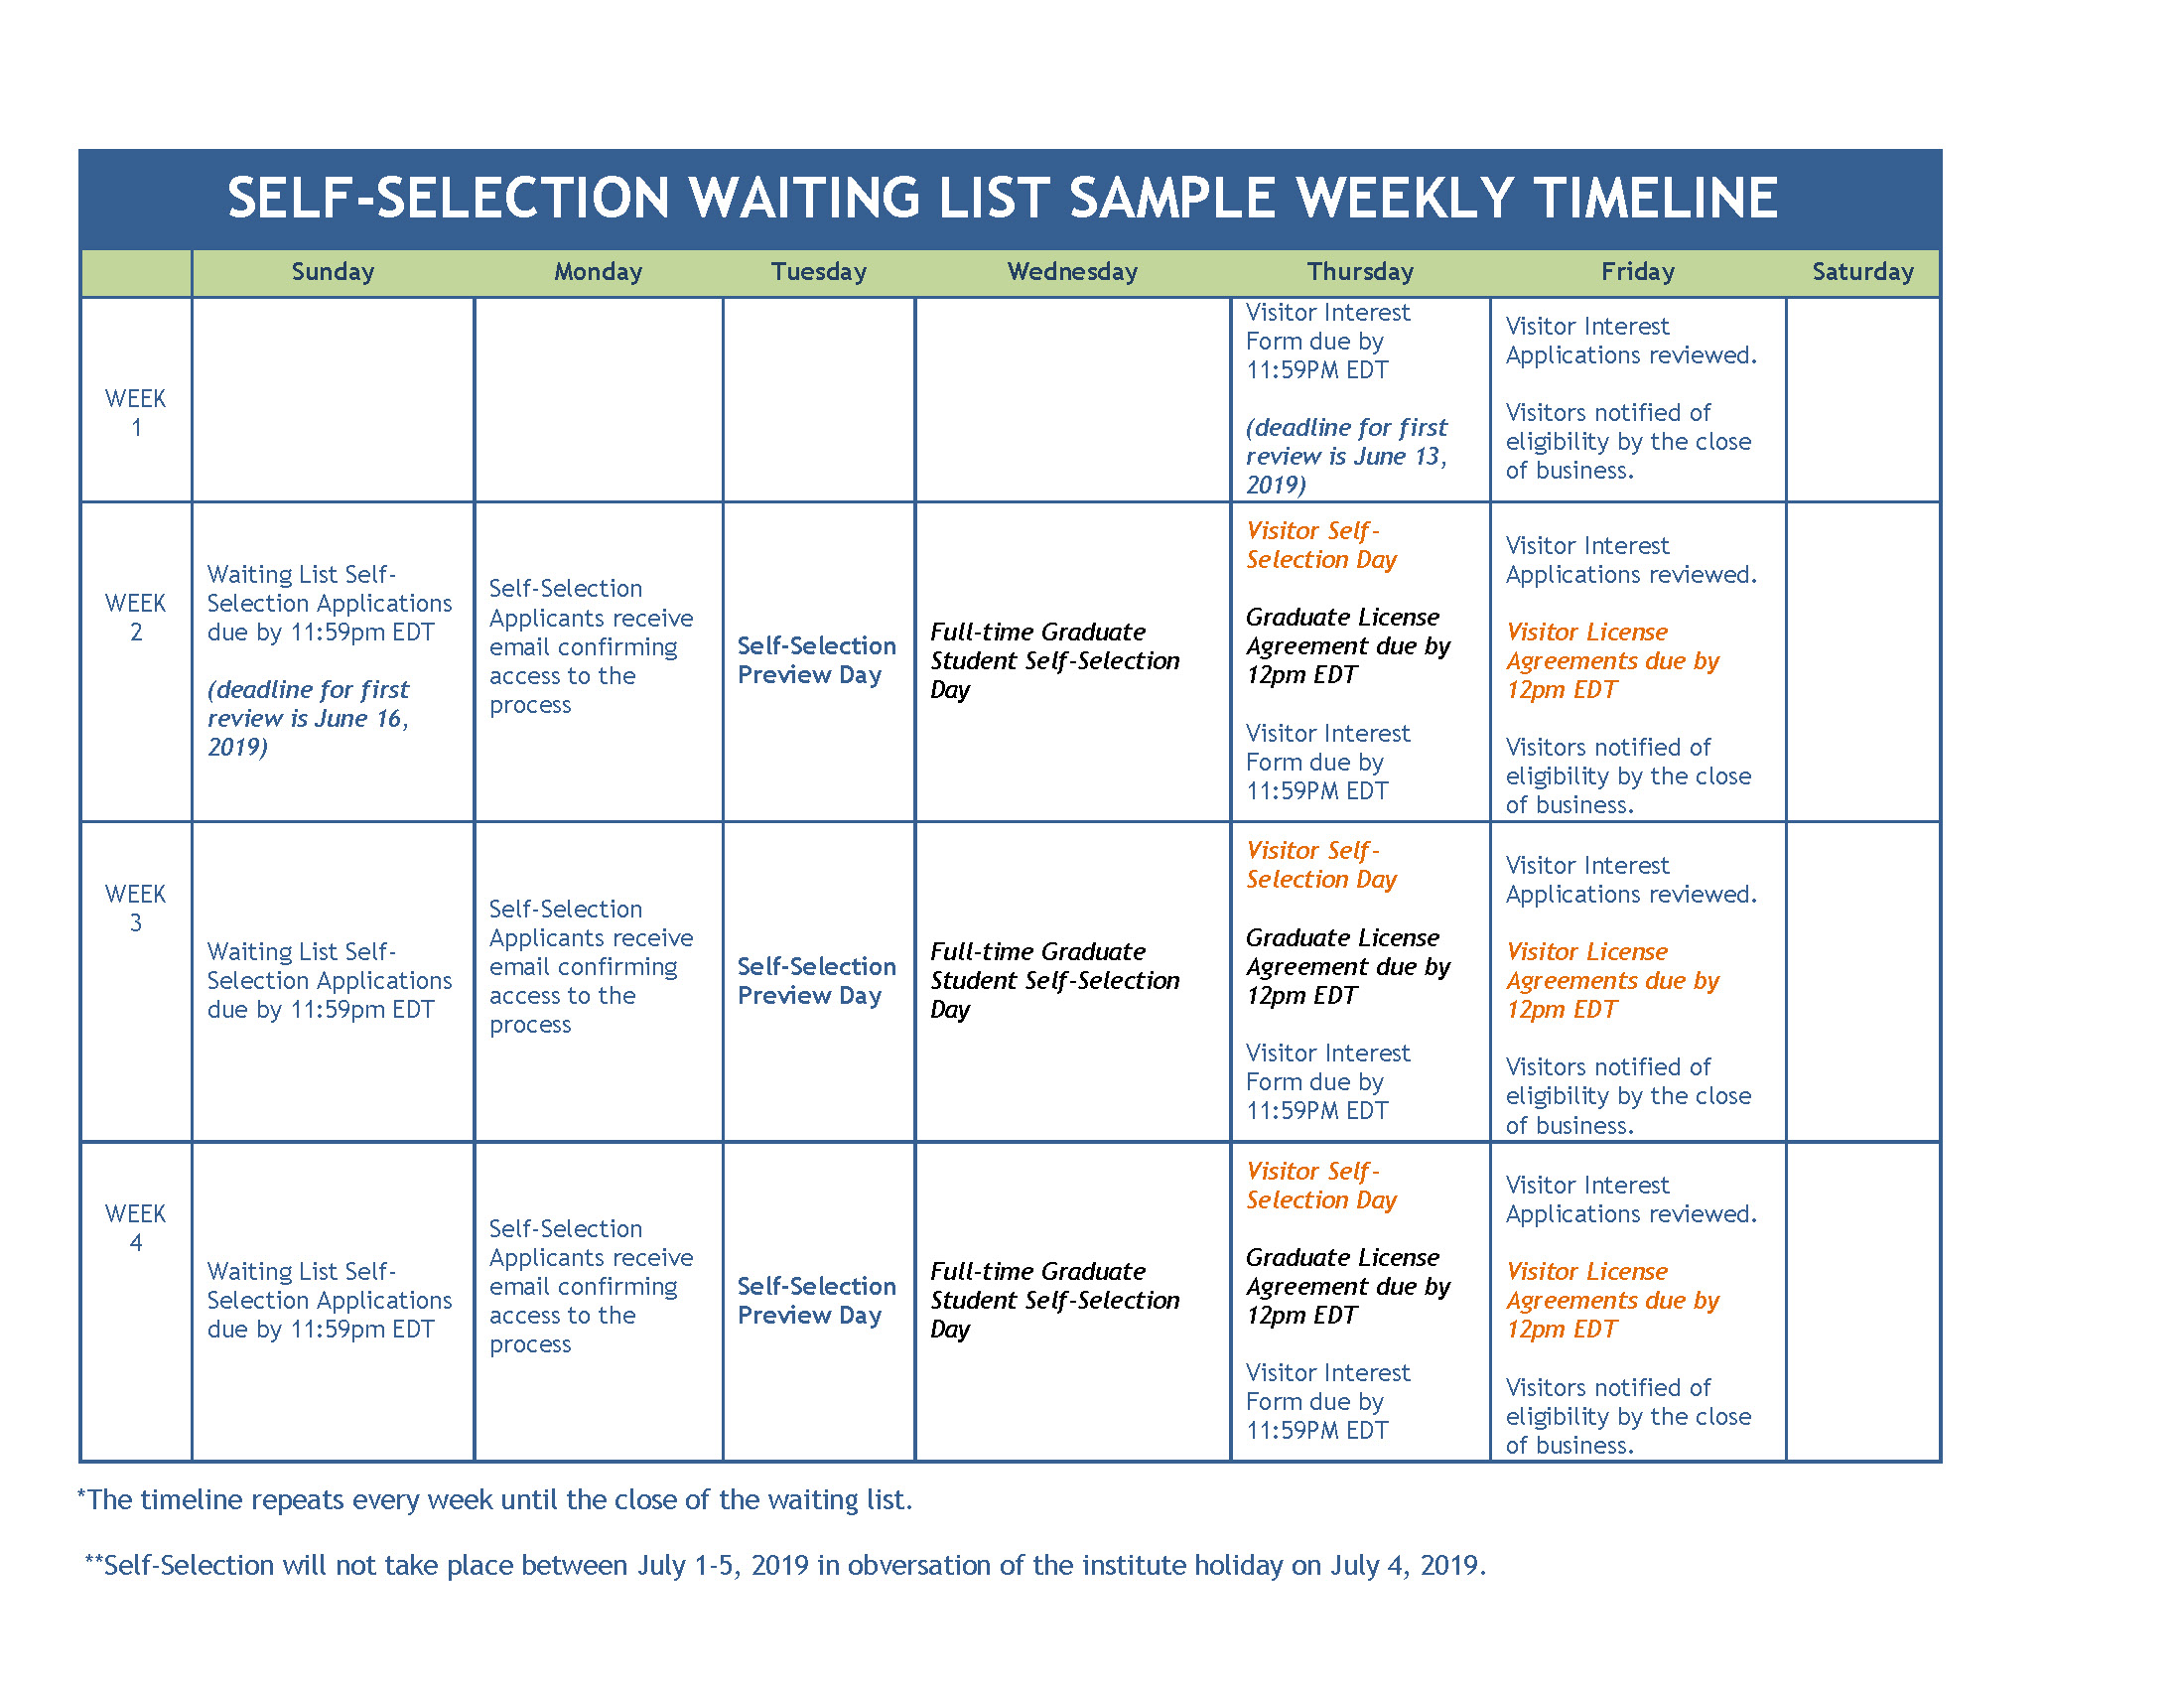 Self-Selection Waiting List Timeline